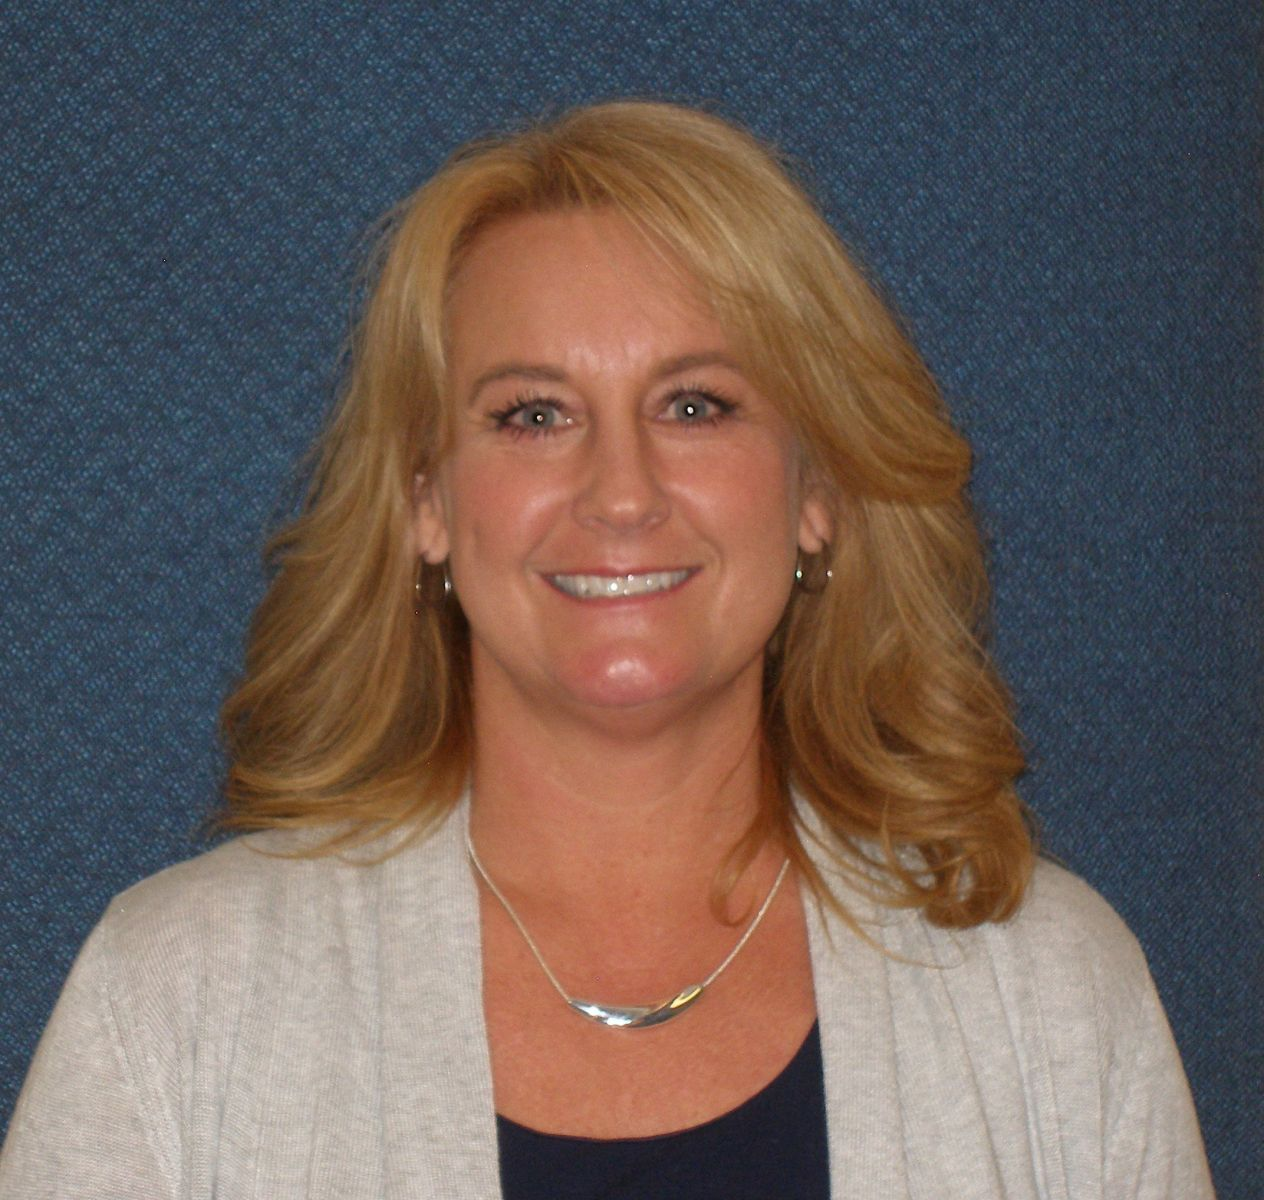 Newly appointed MH/IDD/EI Administrator, Stacey Brookens.